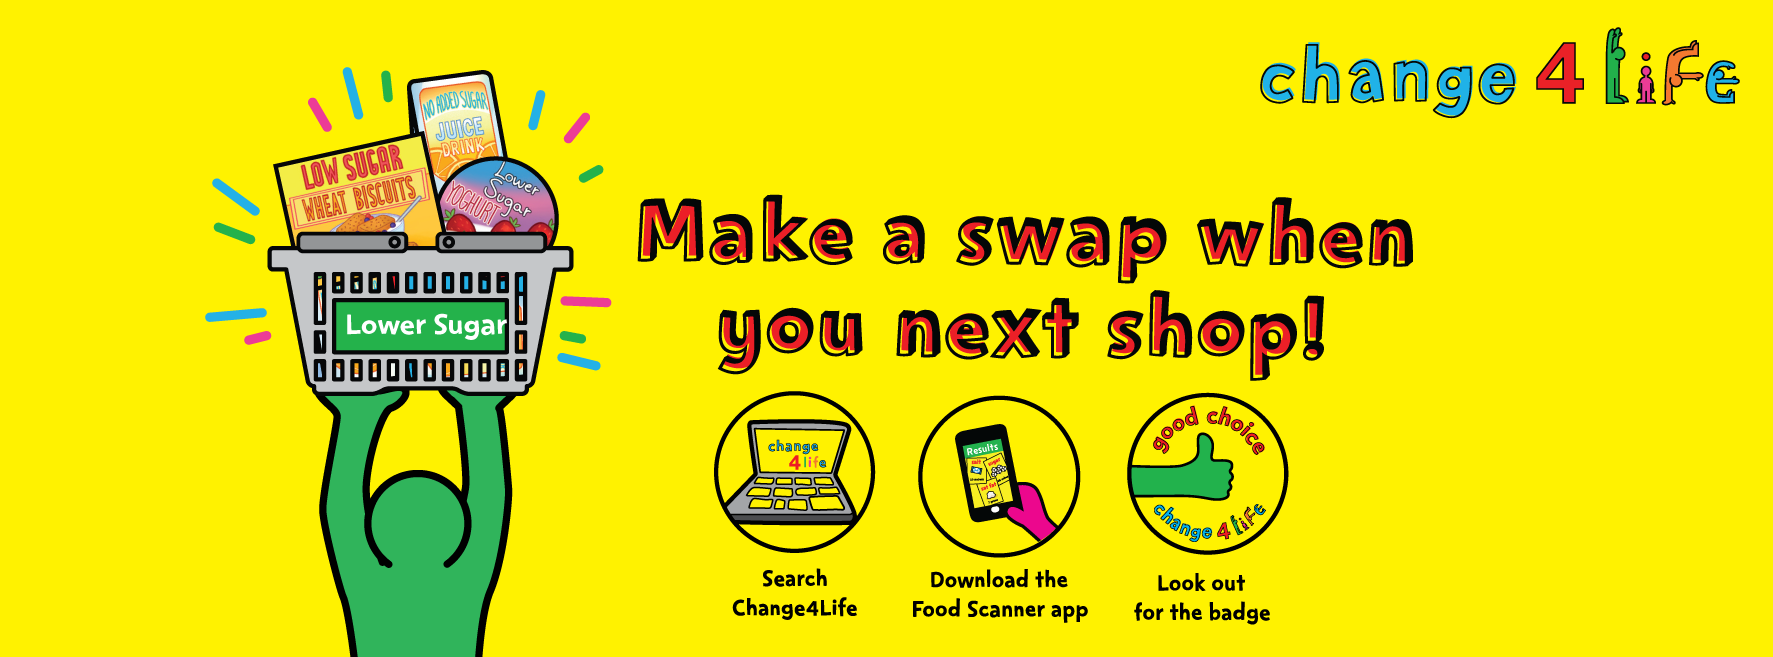 Change for life. Make a swap when you next shop! Search change4Life. Download the Food Scanner app. Look out for the Good Choice badge.